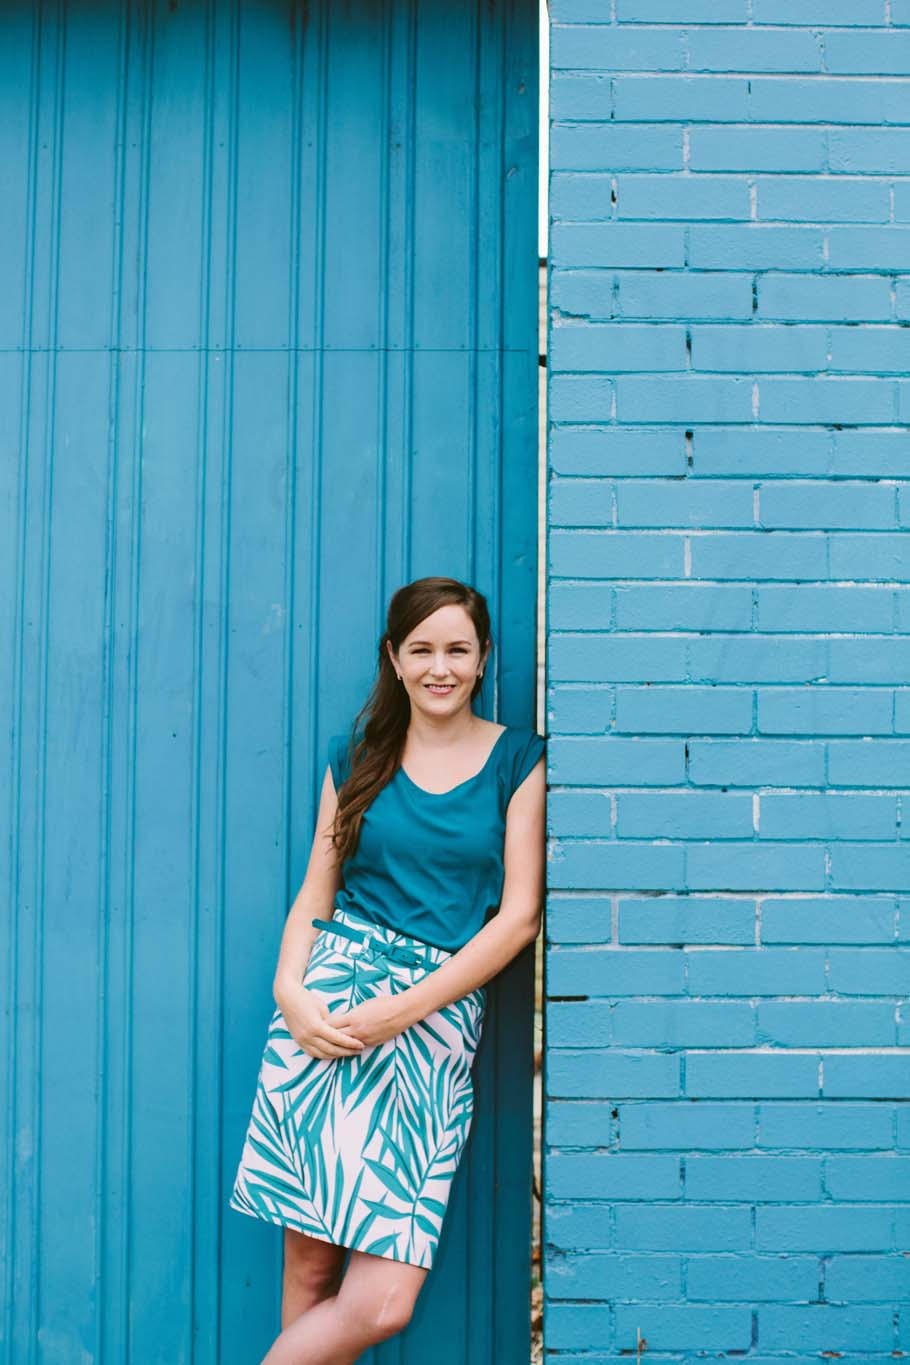 Smiling brunette woman leans against blue building